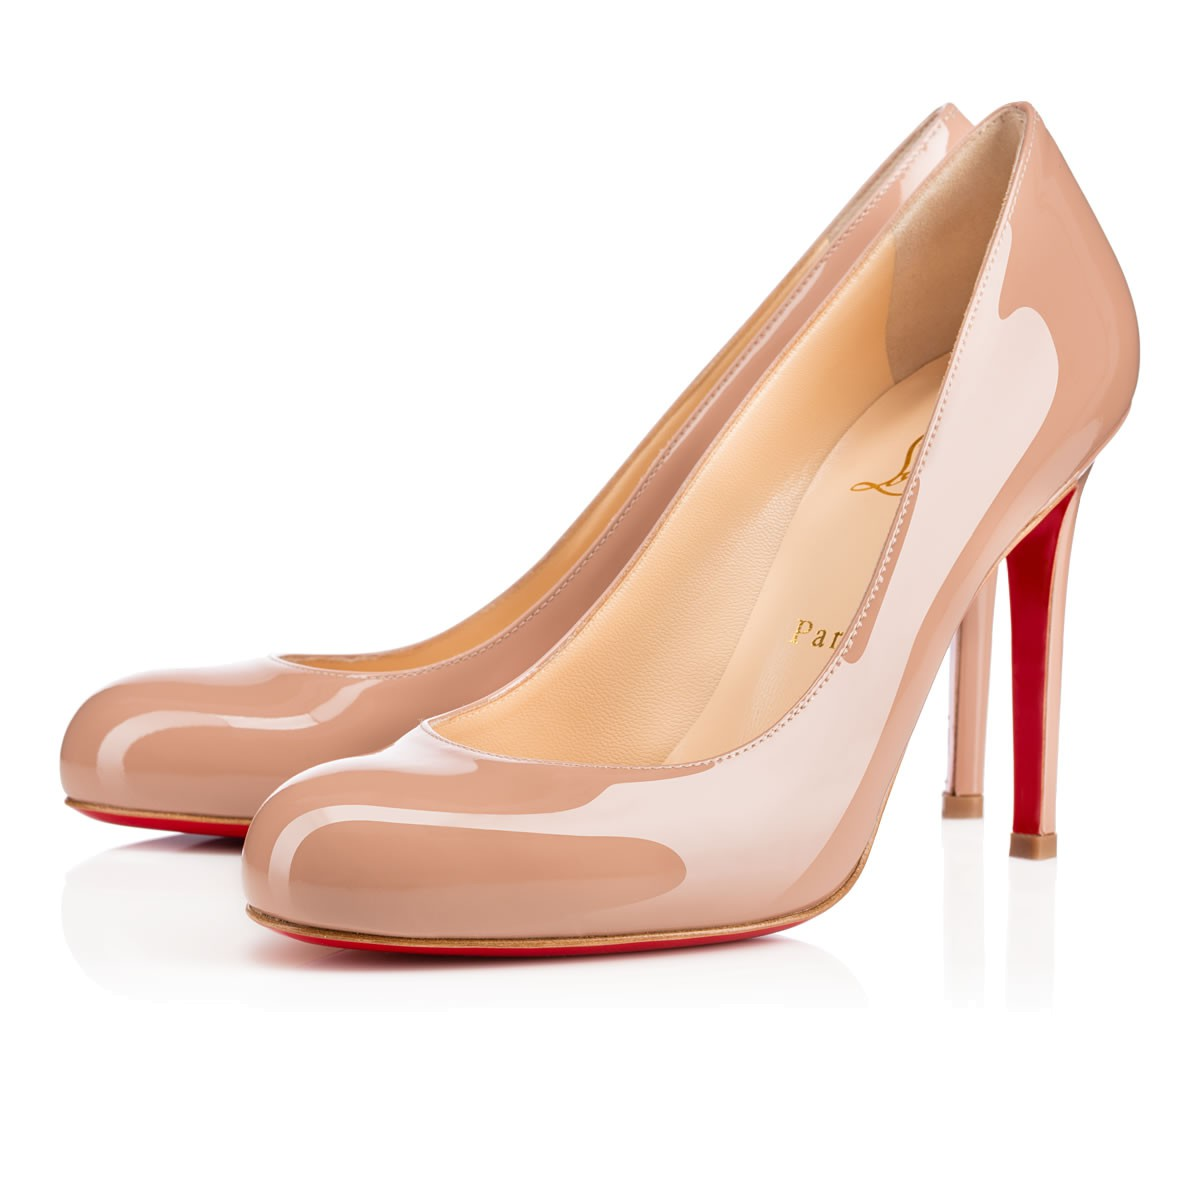 45e8919876f Simple Pump 100 Nude 6248 Patent Leather - Women Shoes ...